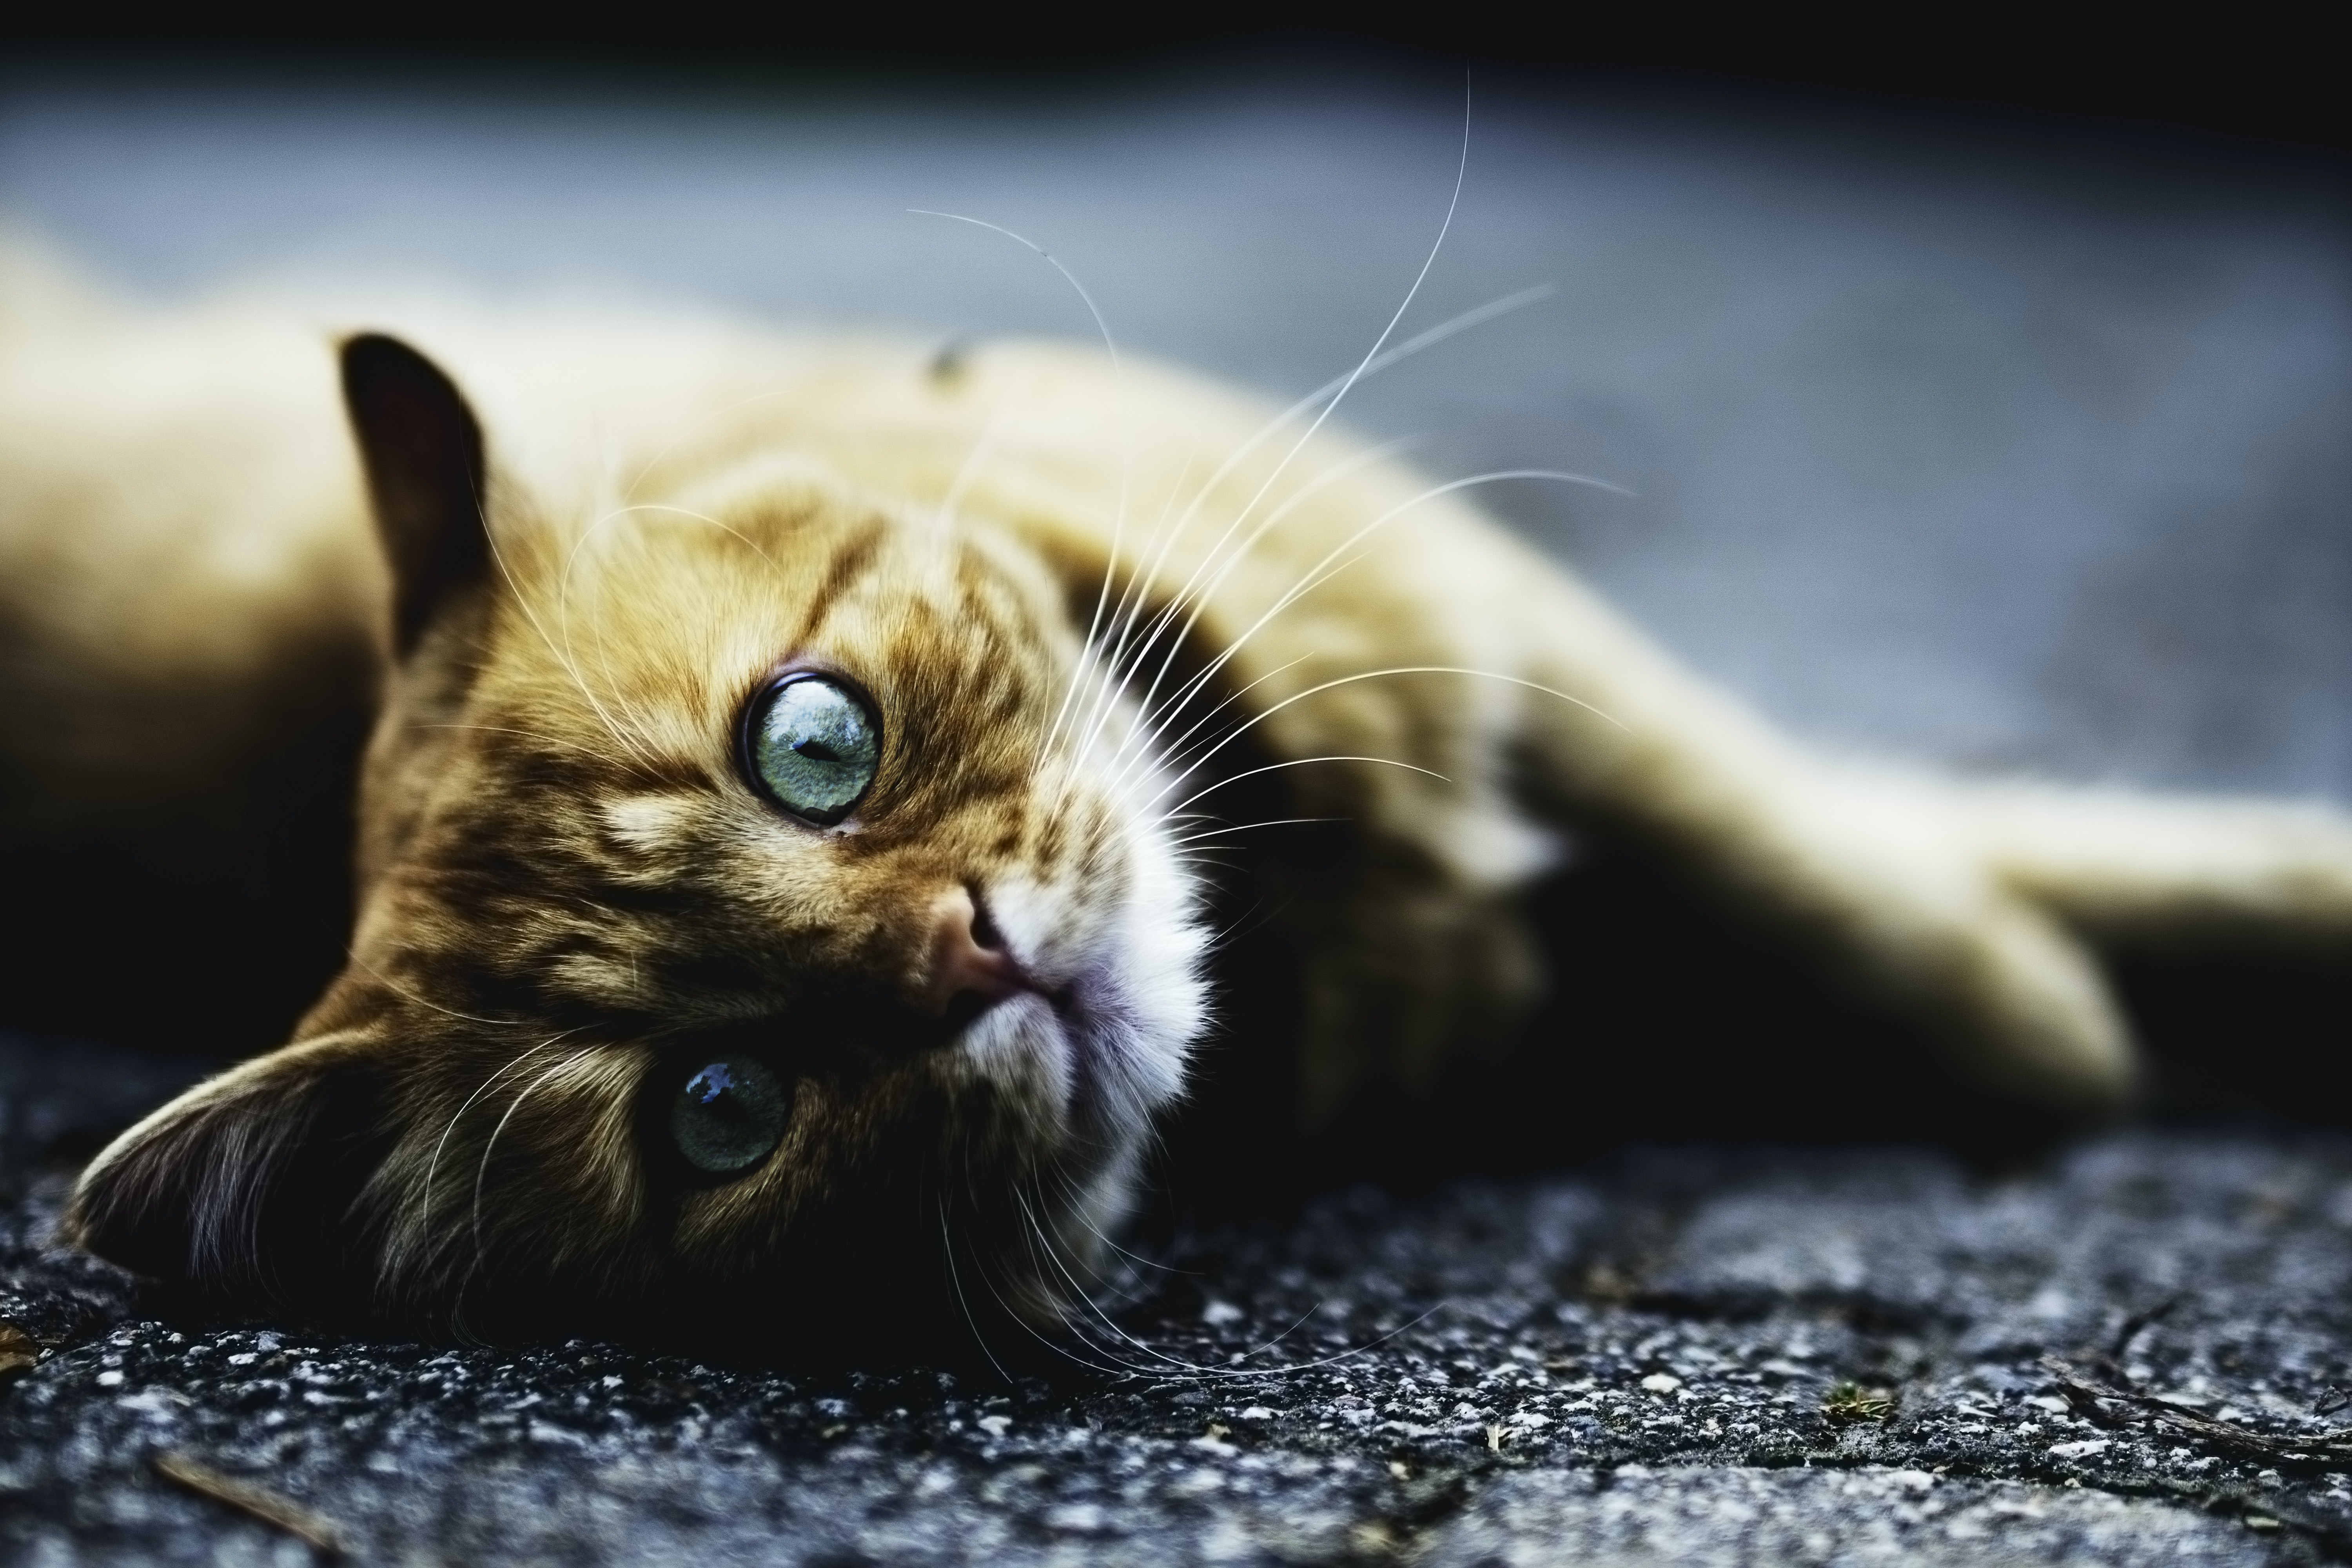 A ginger cat looks at the camera while lying down on its side